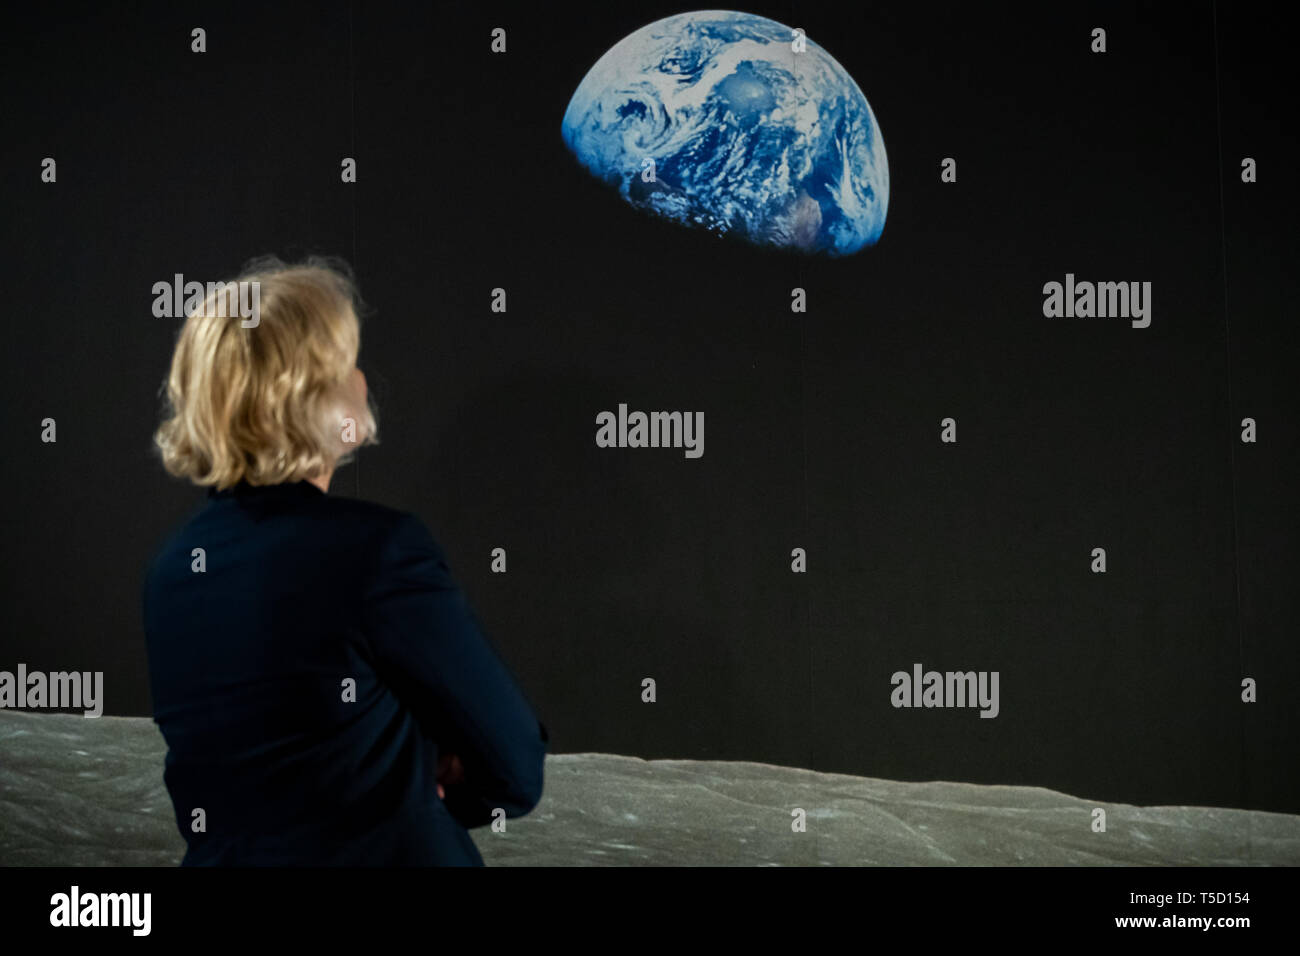 24 April 2019, Bavaria, Nürnberg: A woman observes during the exhibition 'Spaceship living room. The moon landing as a media event' the picture 'Earthrise' taken from Apollo 8. The exhibition at the Museum of Communication, which runs until 22 September 2019, documents the first globally live event - the moon landing on the night of 20 to 21 July 1969. Photo: Daniel Karmann/dpa - ATTENTION: Only for editorial use in connection with reporting about the exhibition 'Raumschiff Wohnzimmer. Die Mondlandung als Medienereignis' and only with complete mention of the above credit - Stock Image